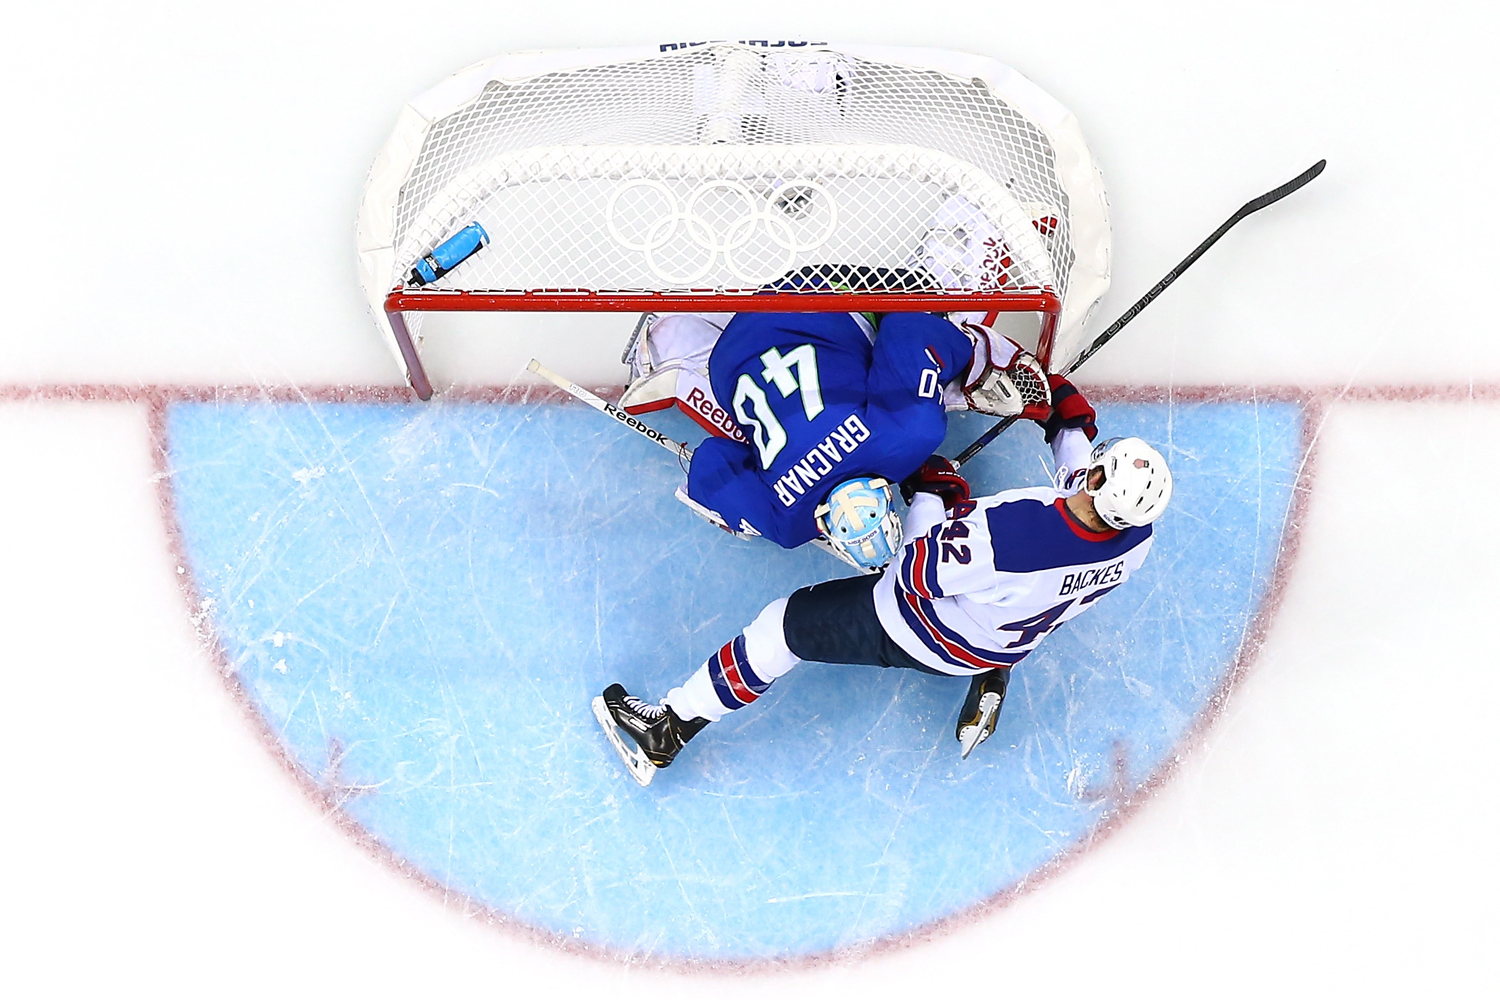 David Backes #42 of the United States collides with Luka Gracnar #40 of Slovenia in the second period during the Men's Ice Hockey Preliminary Round Group A game during the Sochi 2014 Winter Olympics at Shayba Arena on February 16, 2014 in Sochi, Russia.